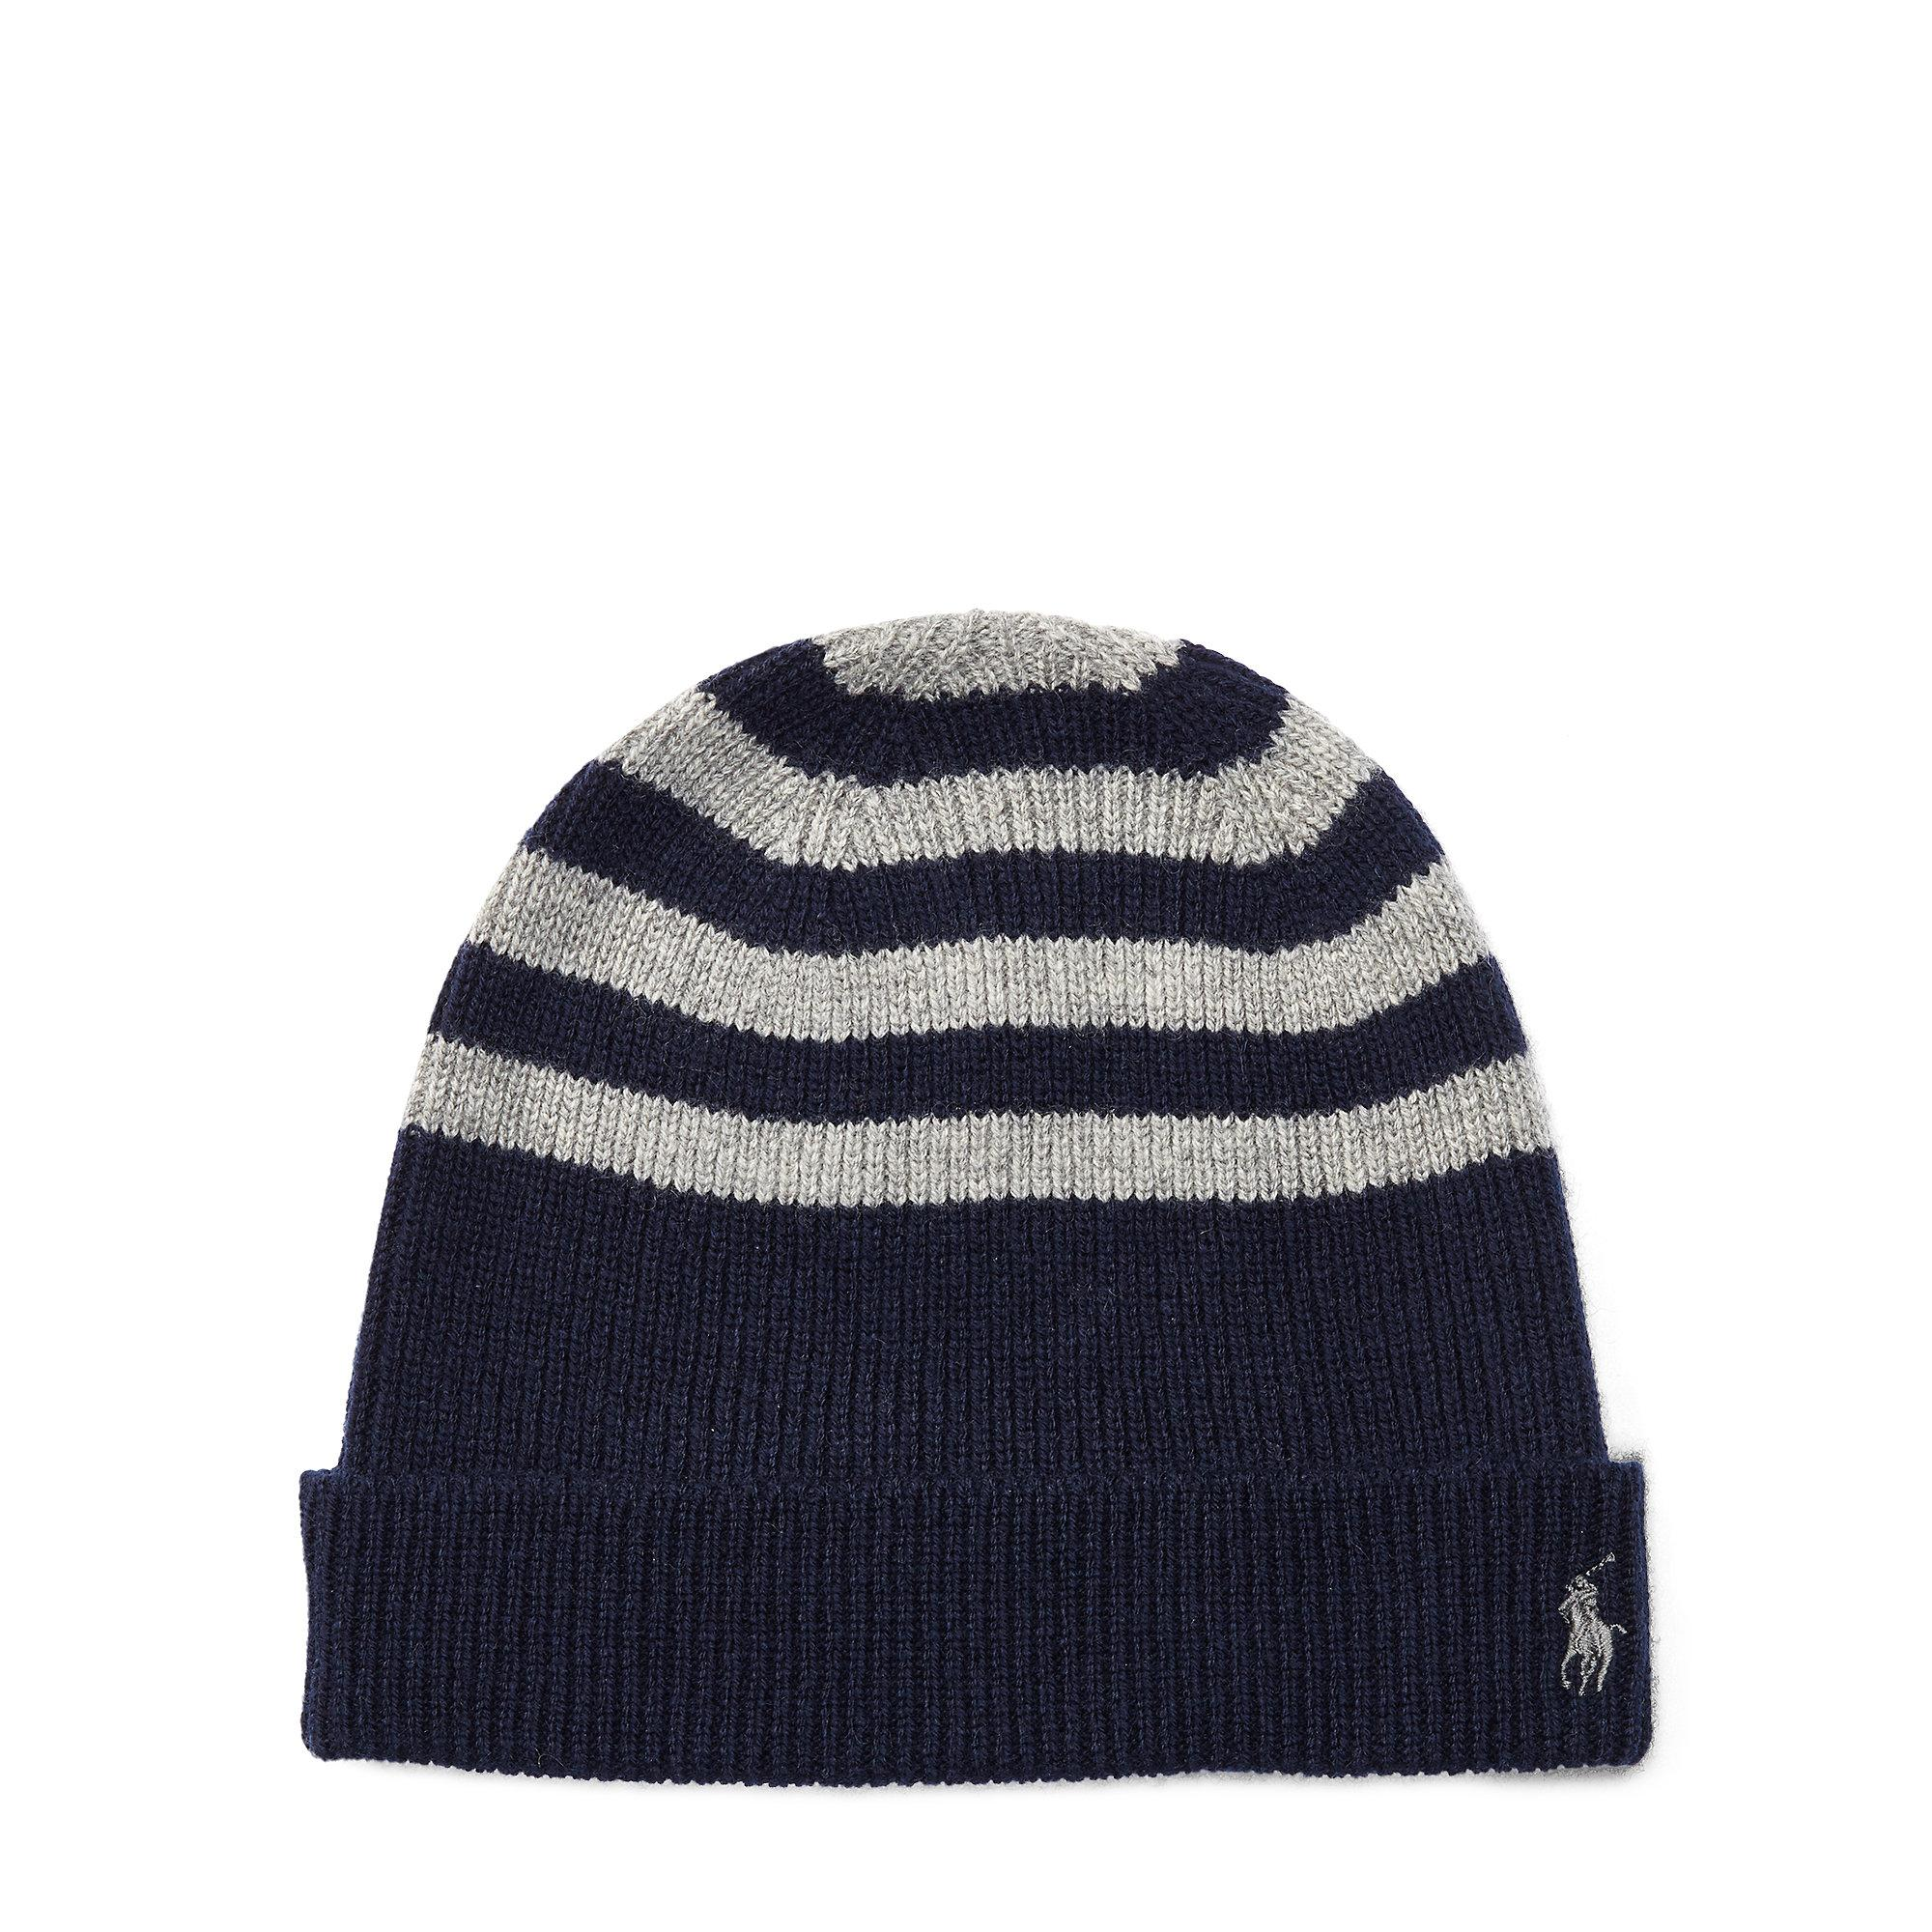 Lyst - Polo Ralph Lauren Rib-knit Wool-cashmere Hat in Blue for Men 93a76ed91877